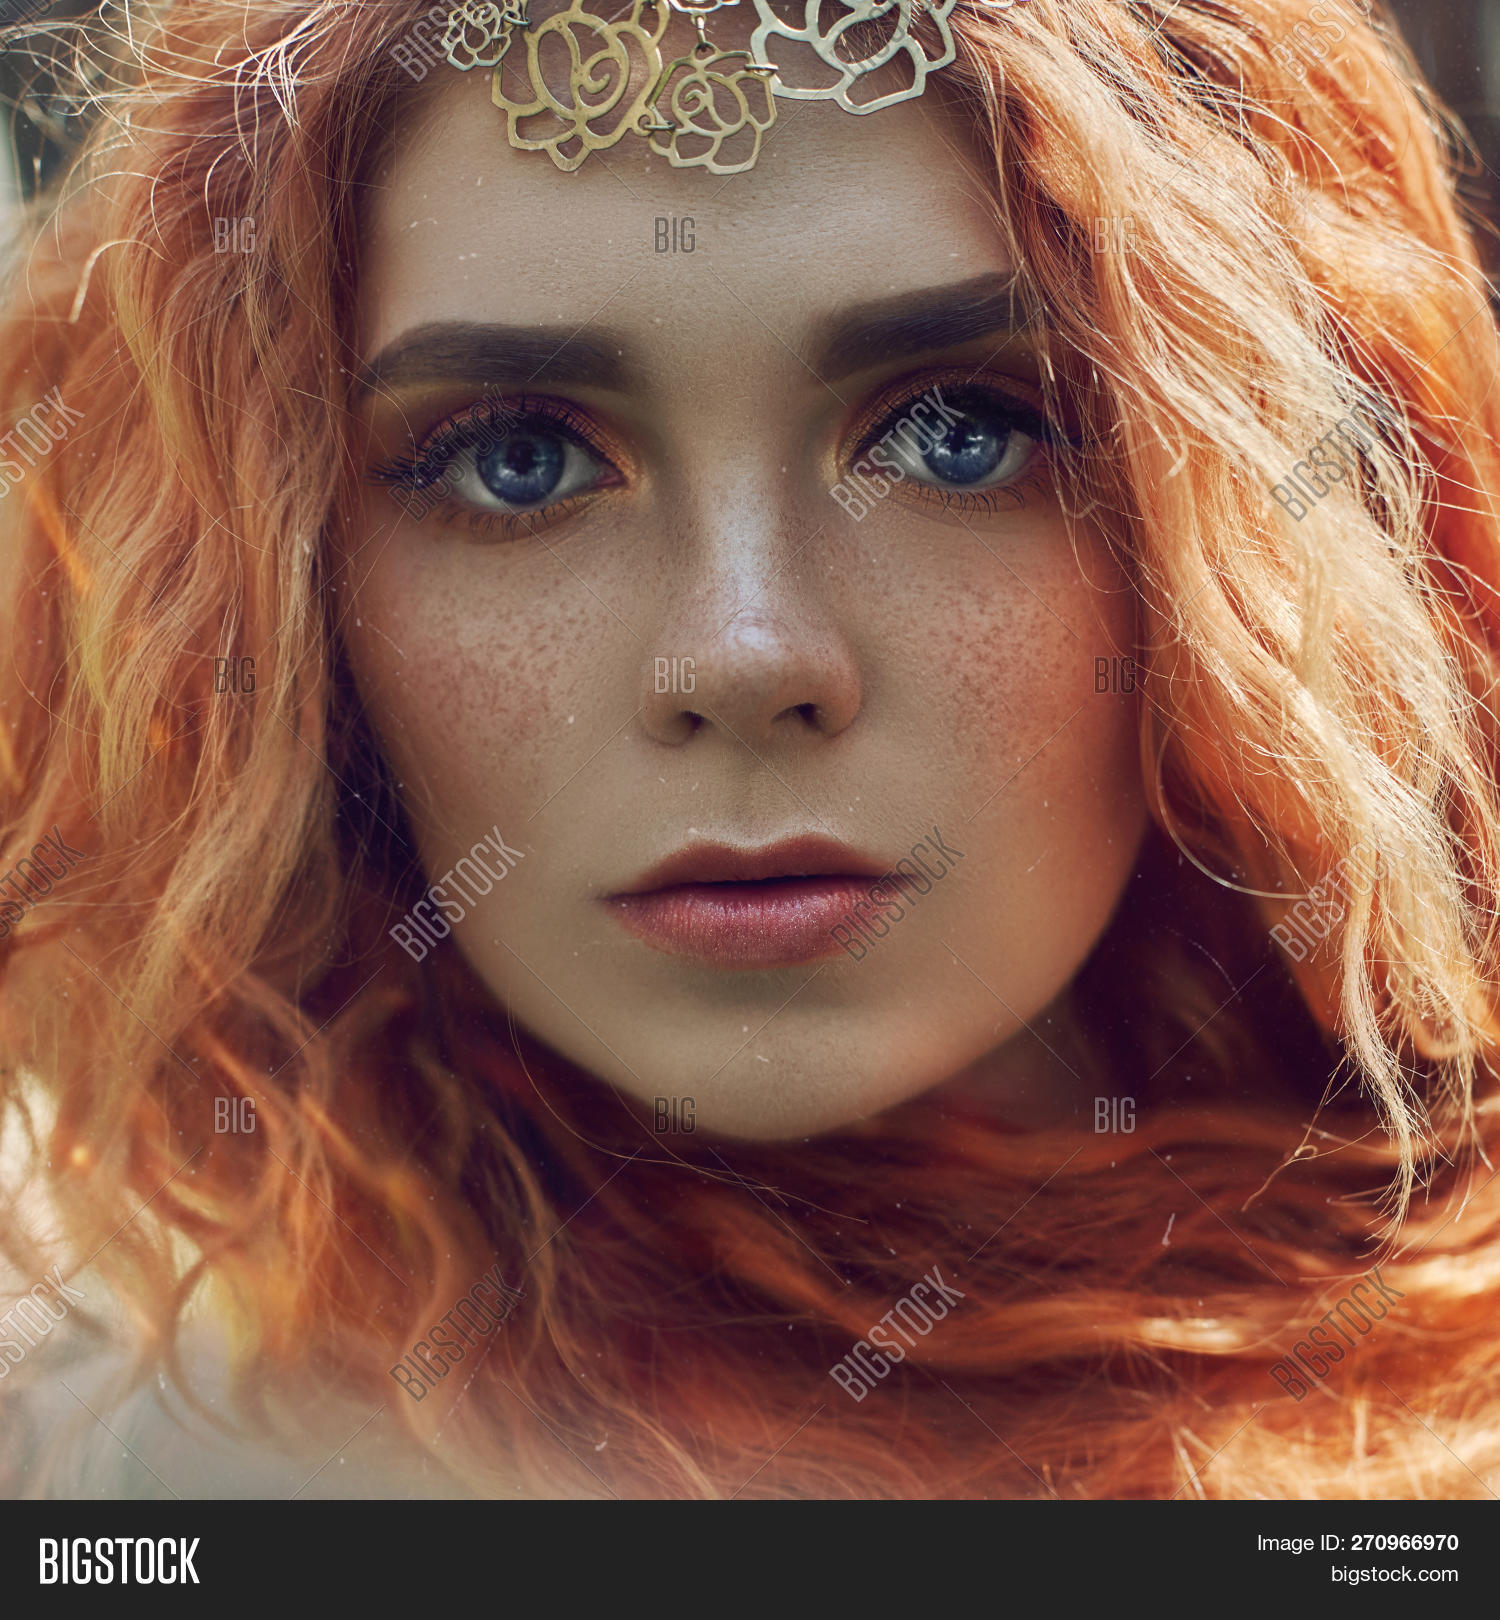 The question beautiful redhead girls with freckles